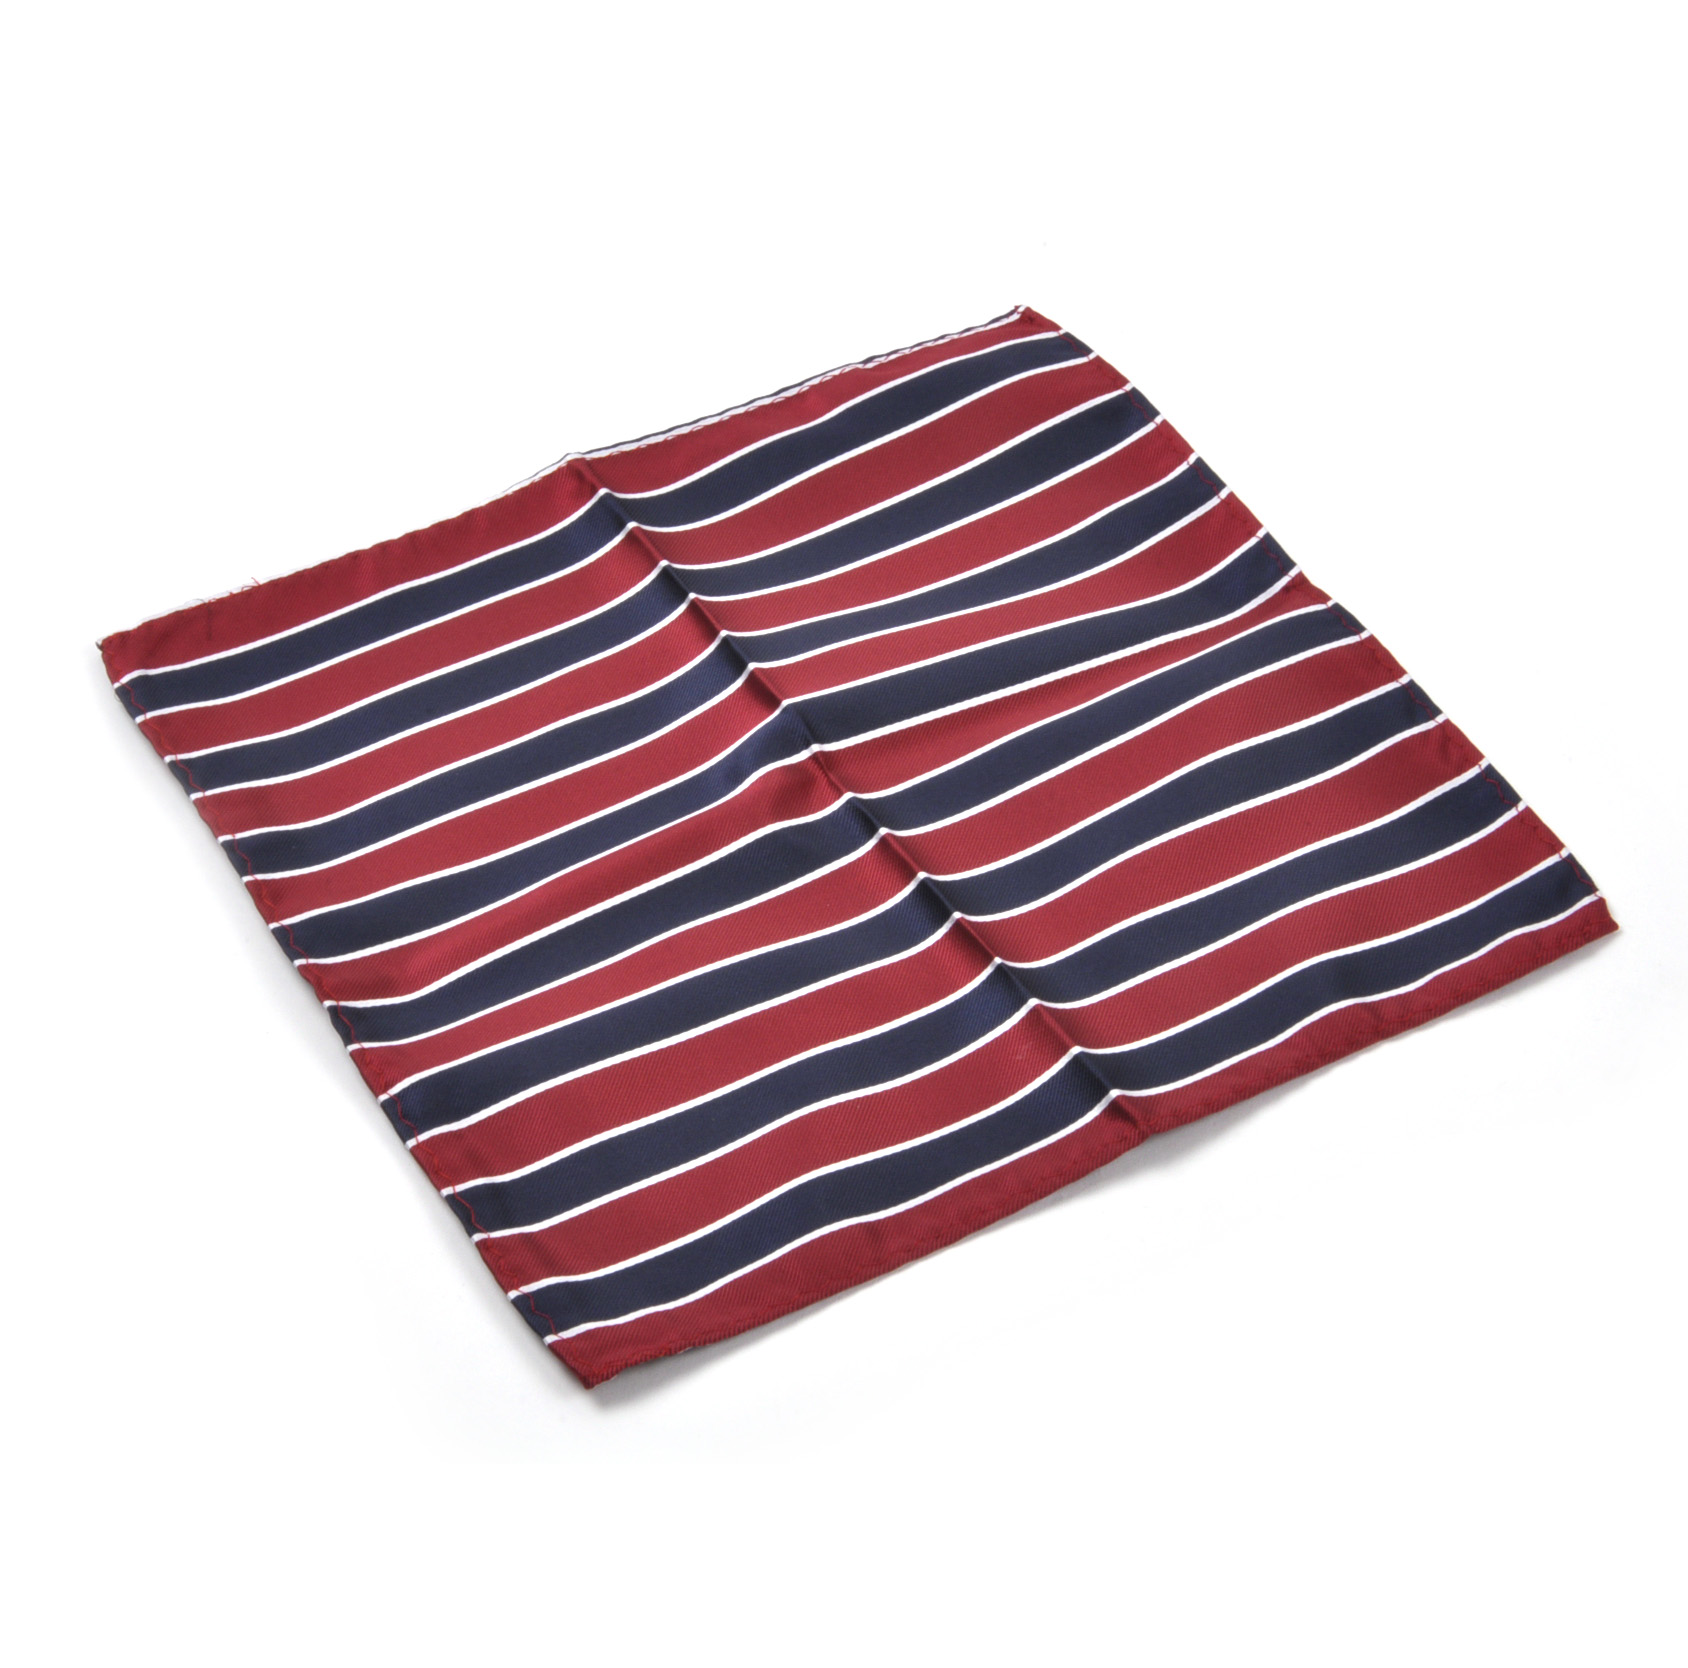 6558f91343132 Navy & Red Striped Pocket Square Handkerchief   Pink Cat Shop